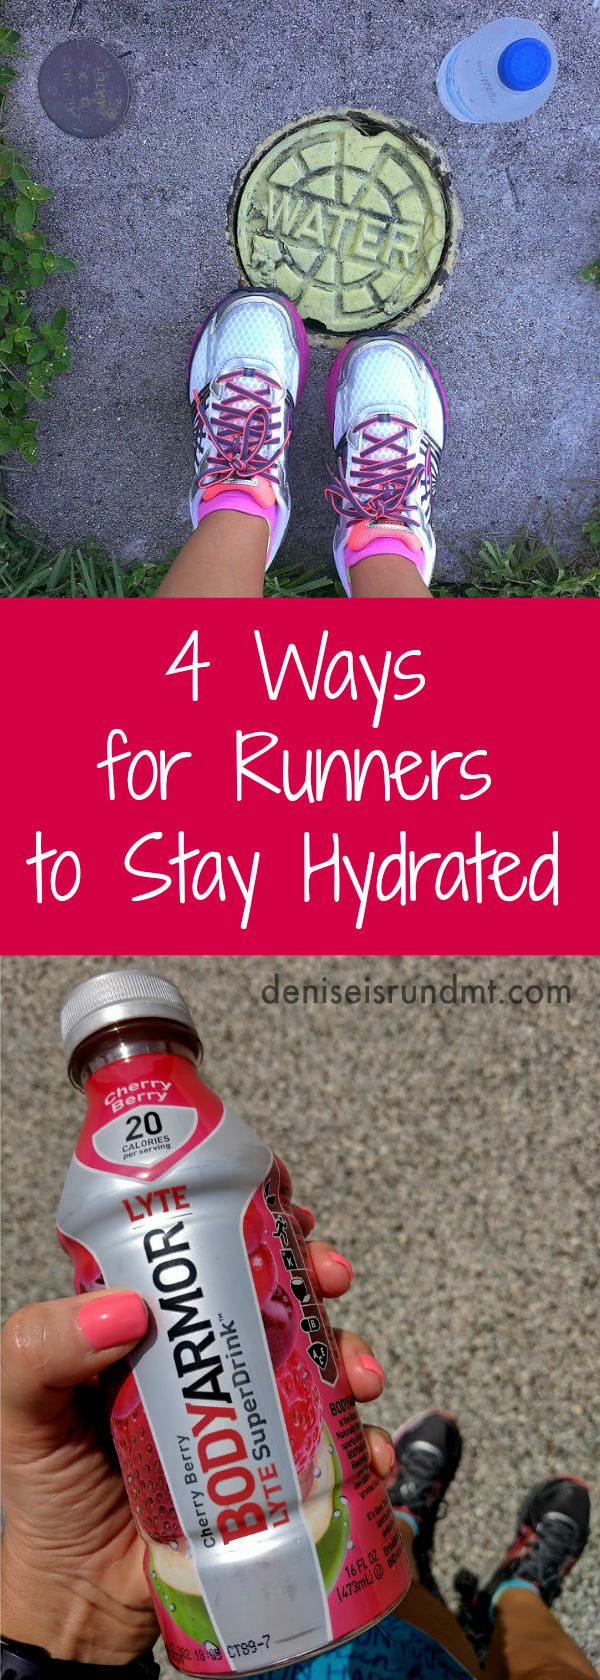 Four Ways for Runners to Stay Hydrated